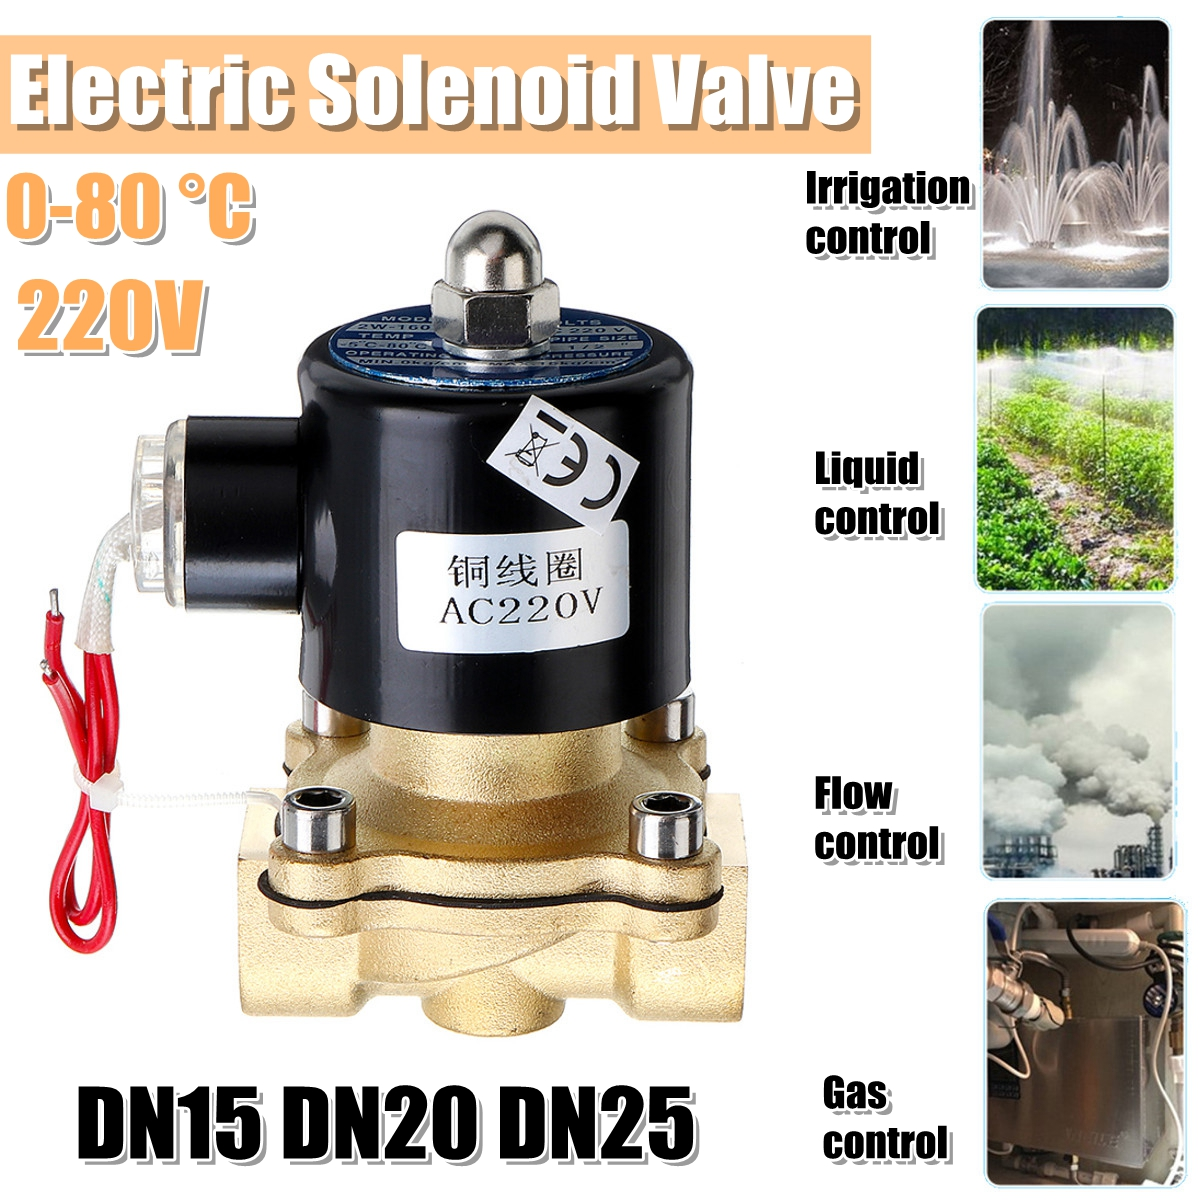 1/2 3/4 1 Inch 220V Electric Solenoid Valve Pneumatic Valve for Water Air Gas Brass Valve Air Valves DN15 DN20 DN25 1 4 sae flare 0 27m3 h liquid line solenoid valve for heat pump water heater replace castel solenoid valves